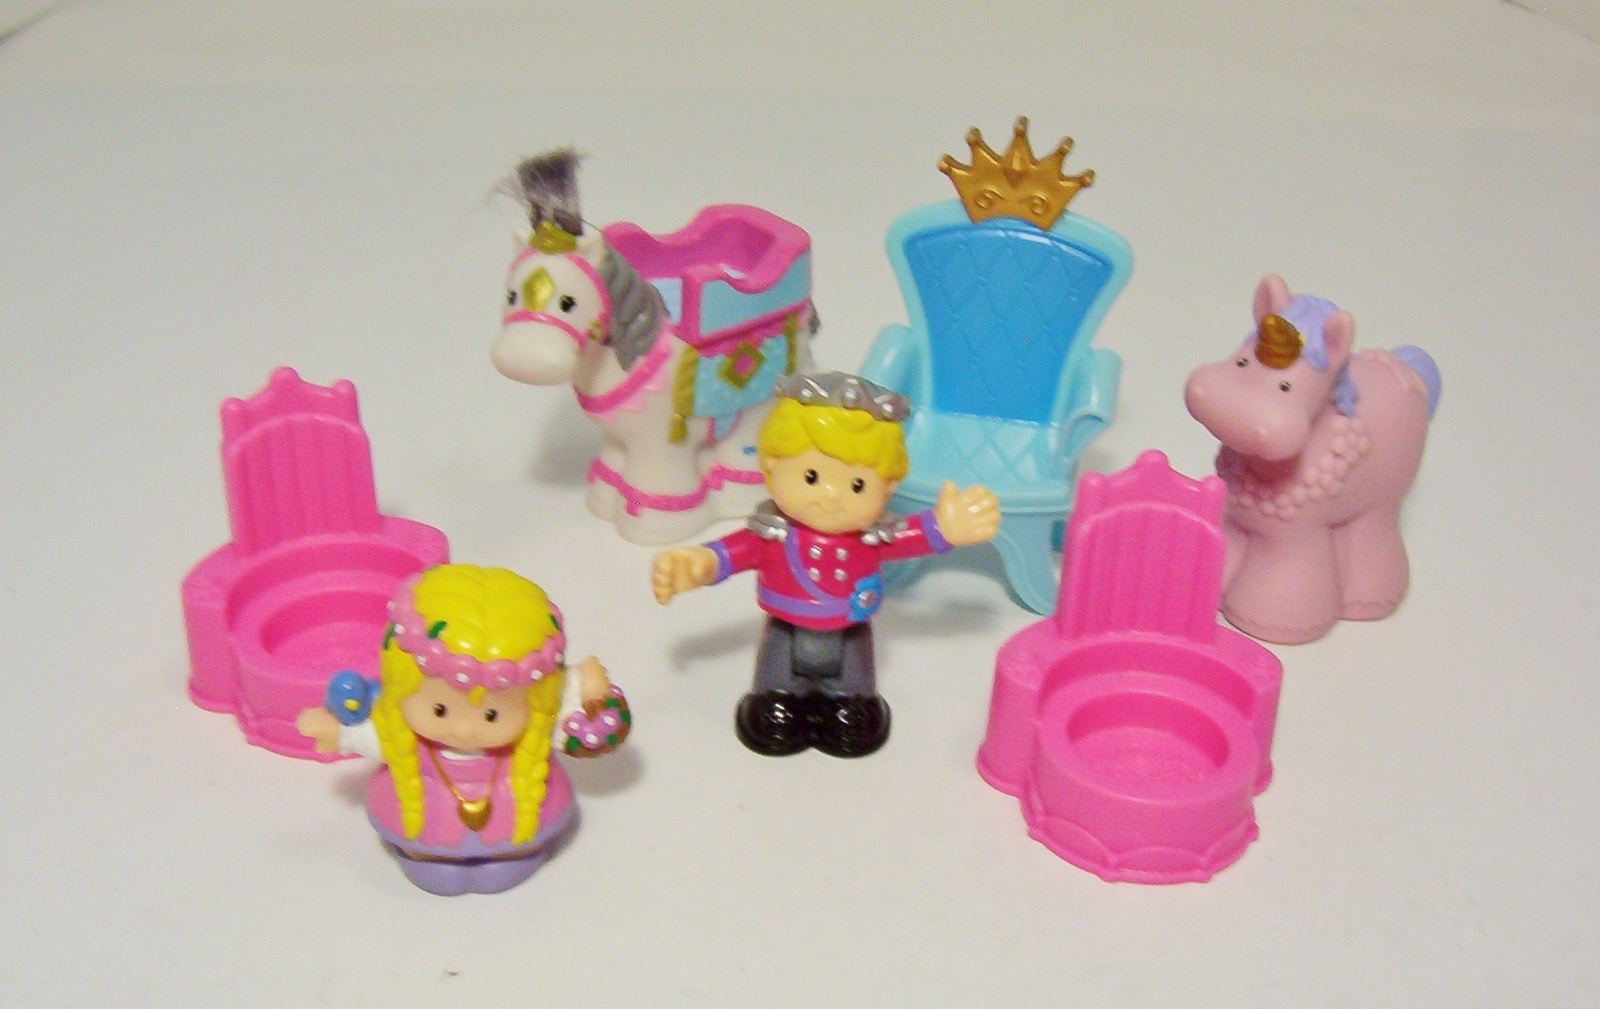 Fisher Price Little People Disney Princess Ariel Castle House Pink Chair Throne